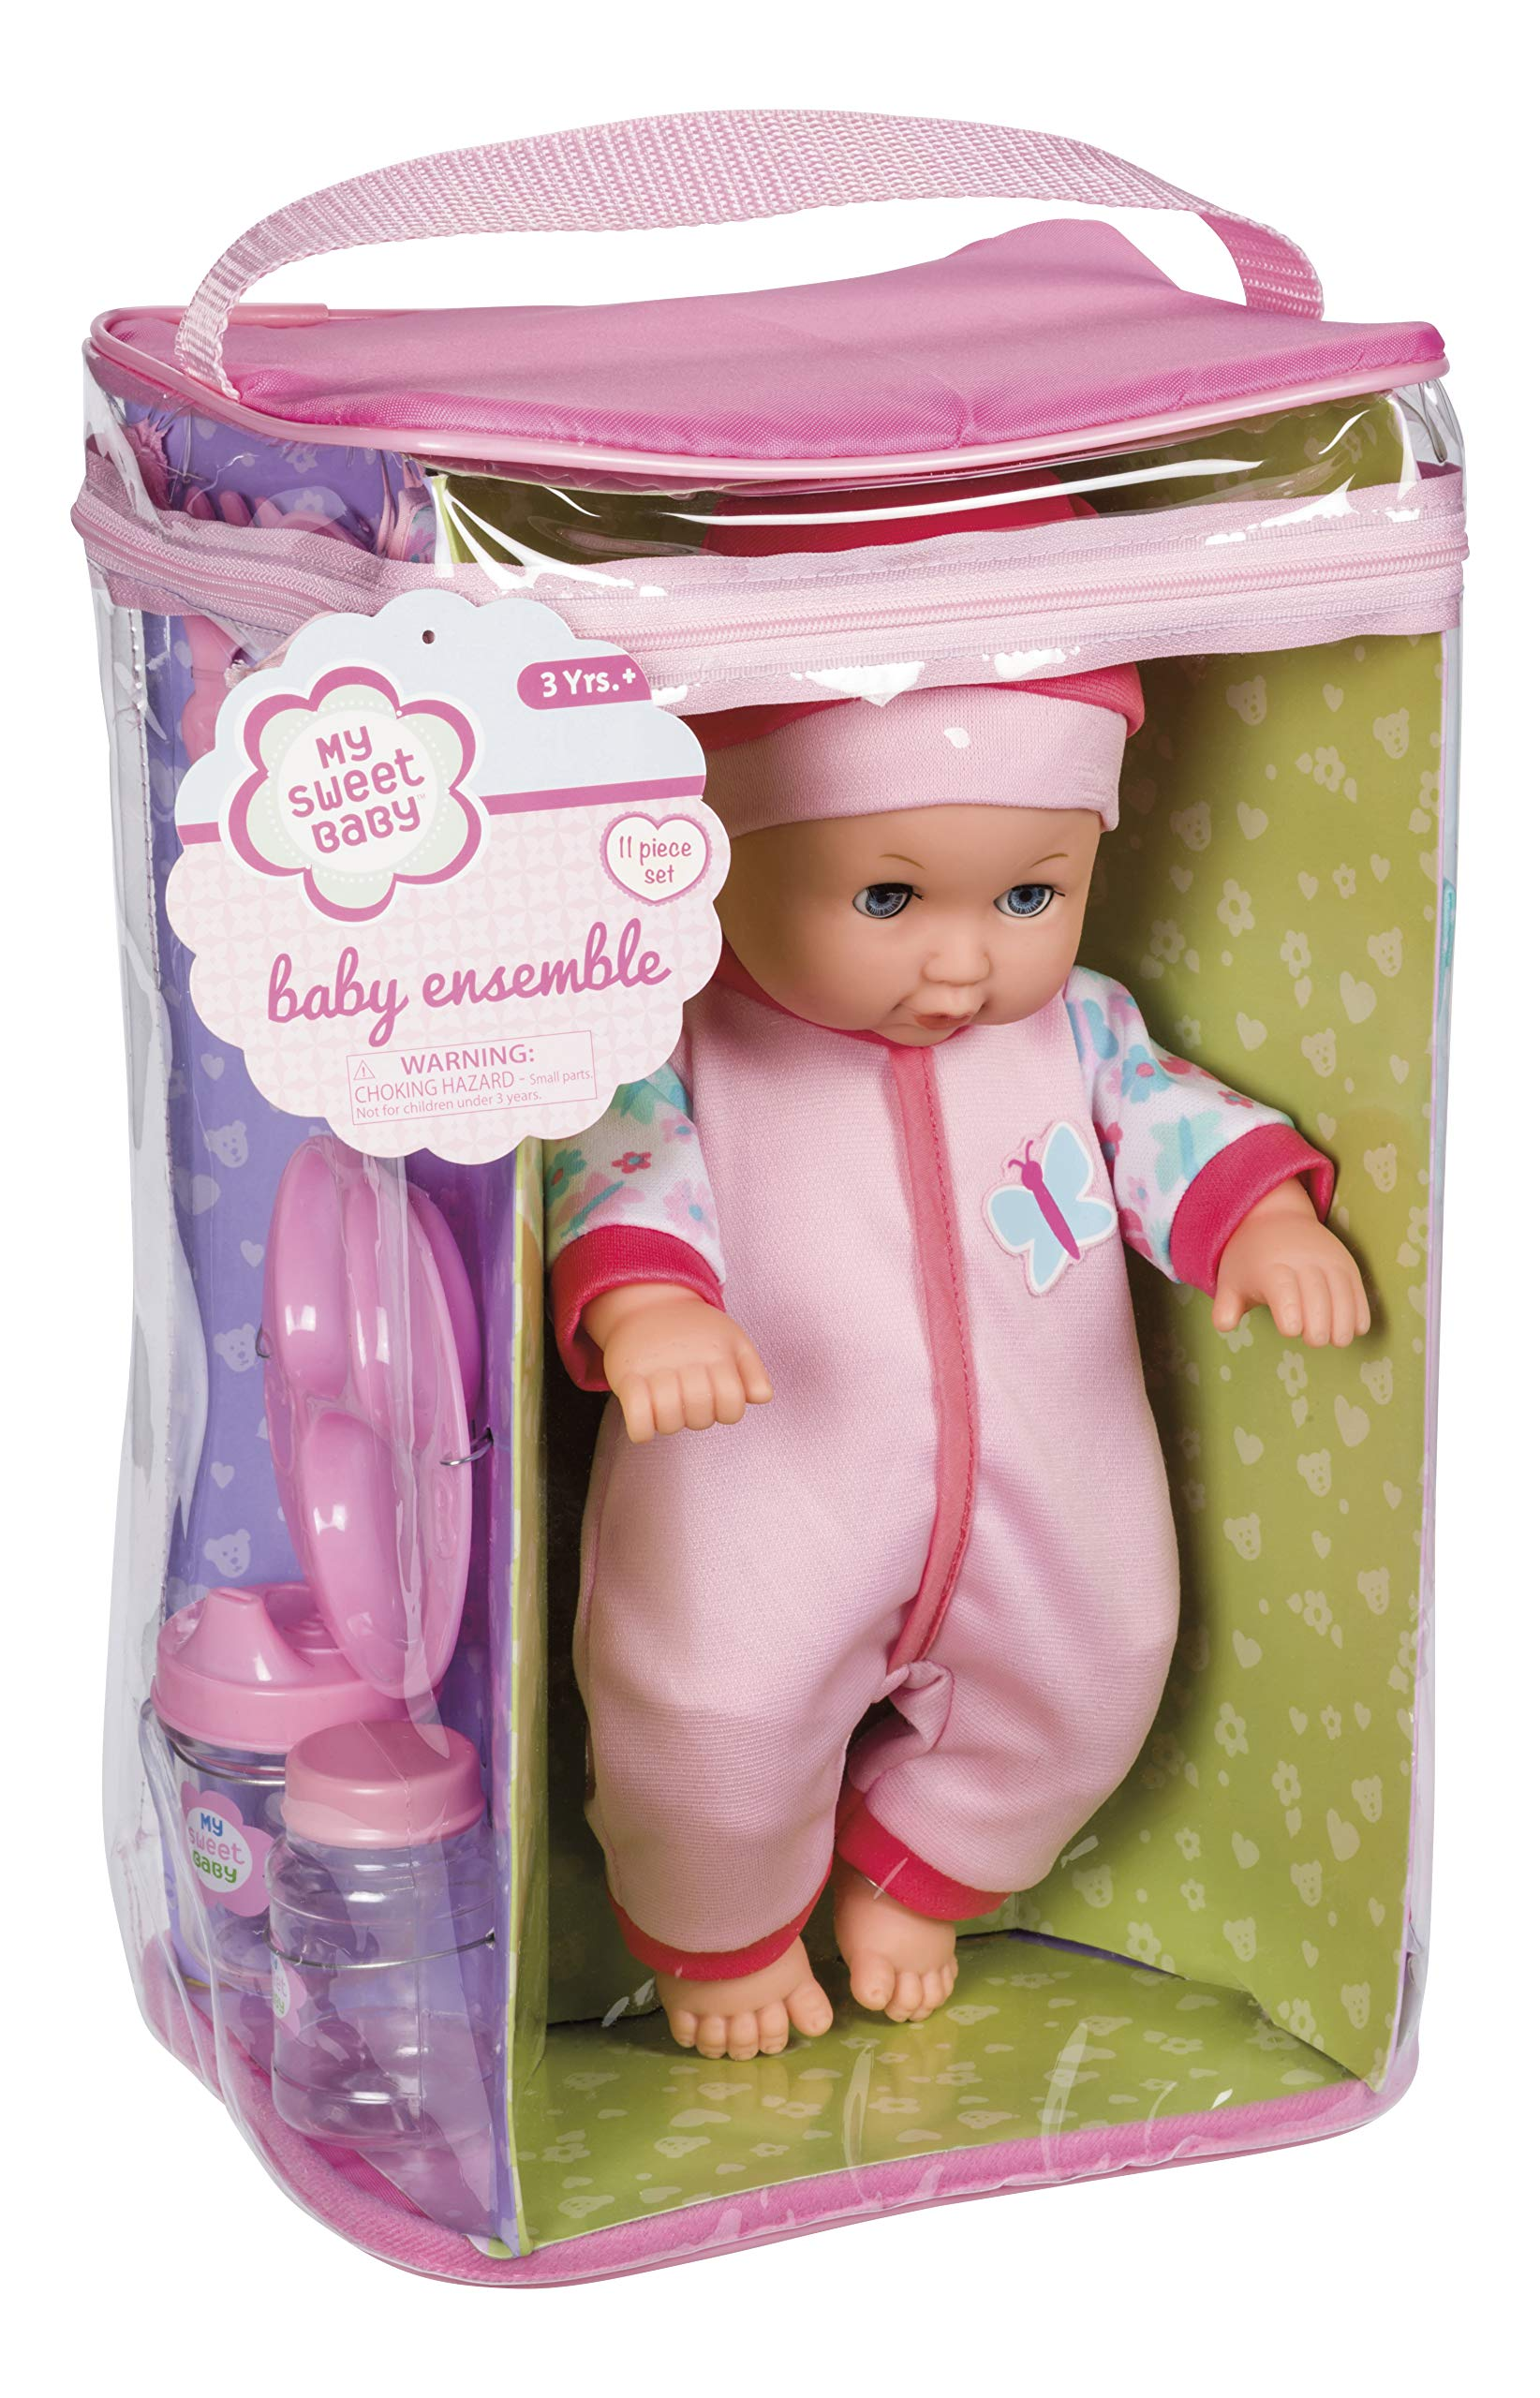 """Toysmith Deluxe Baby Ensemble 12- Piece Doll Playset - 11 1/2"""" soft body doll with change of clothes (clothing may vary)"""